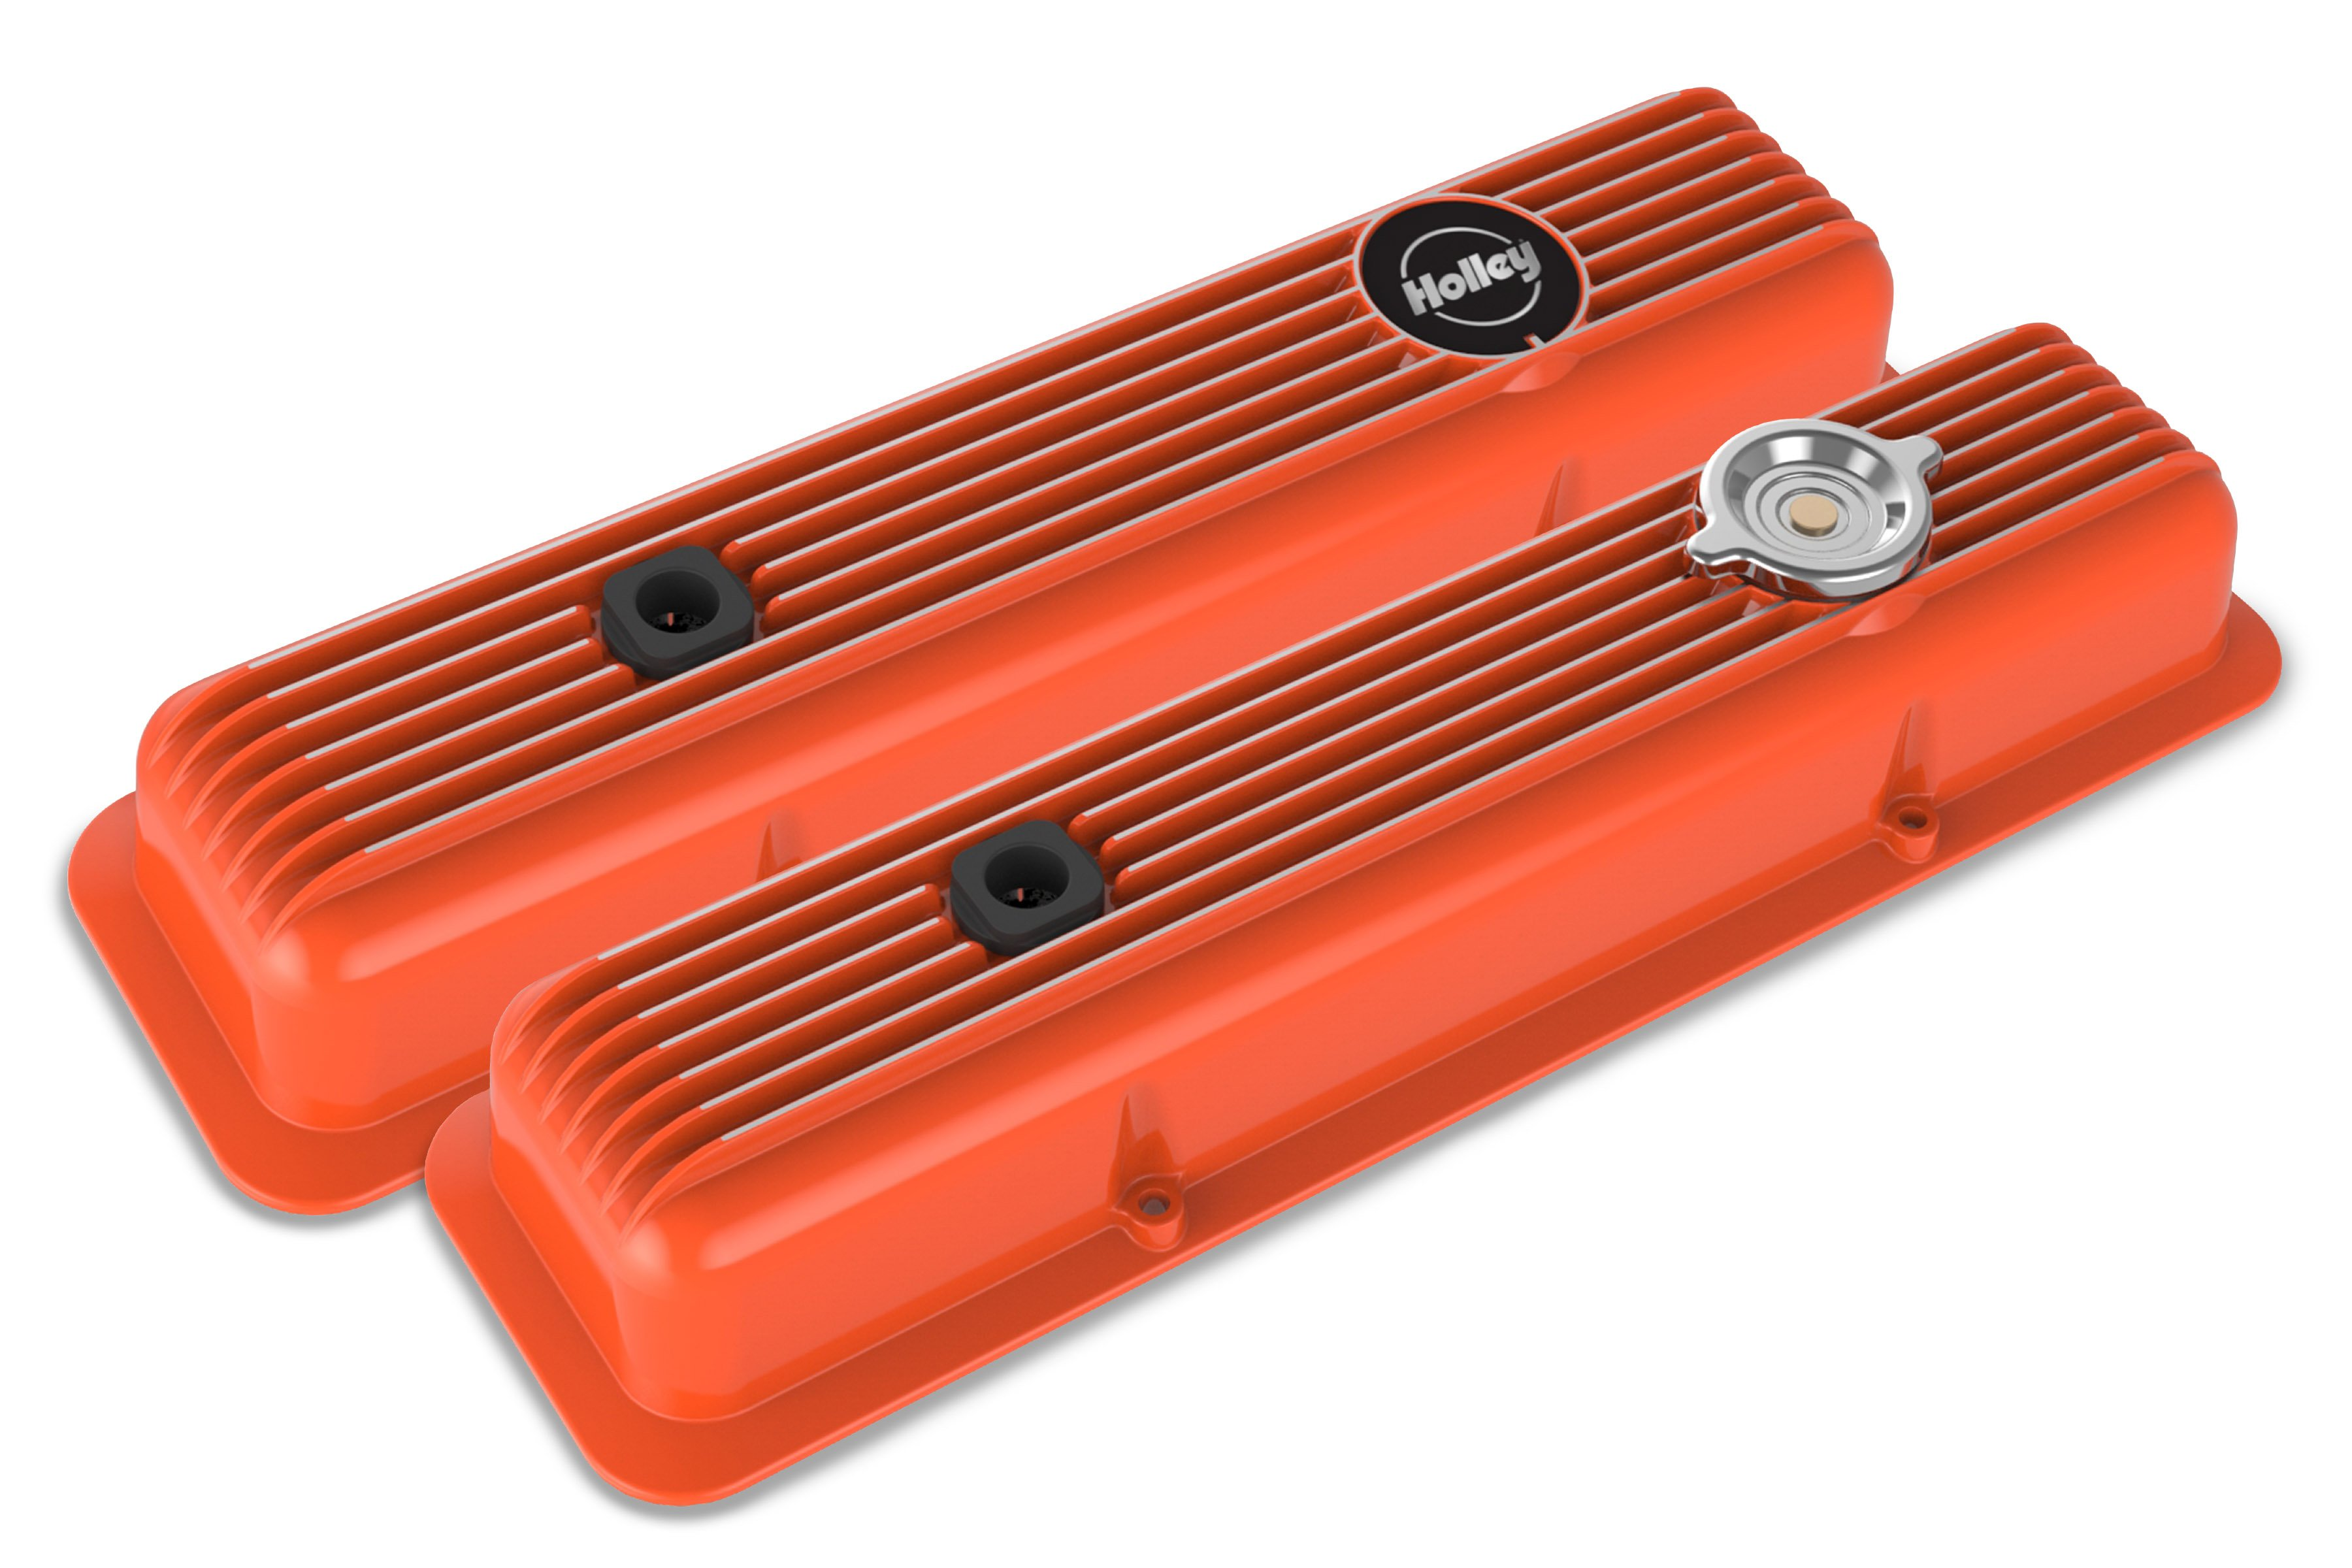 Holley 241 136 Muscle Series Valve Covers For Small Block